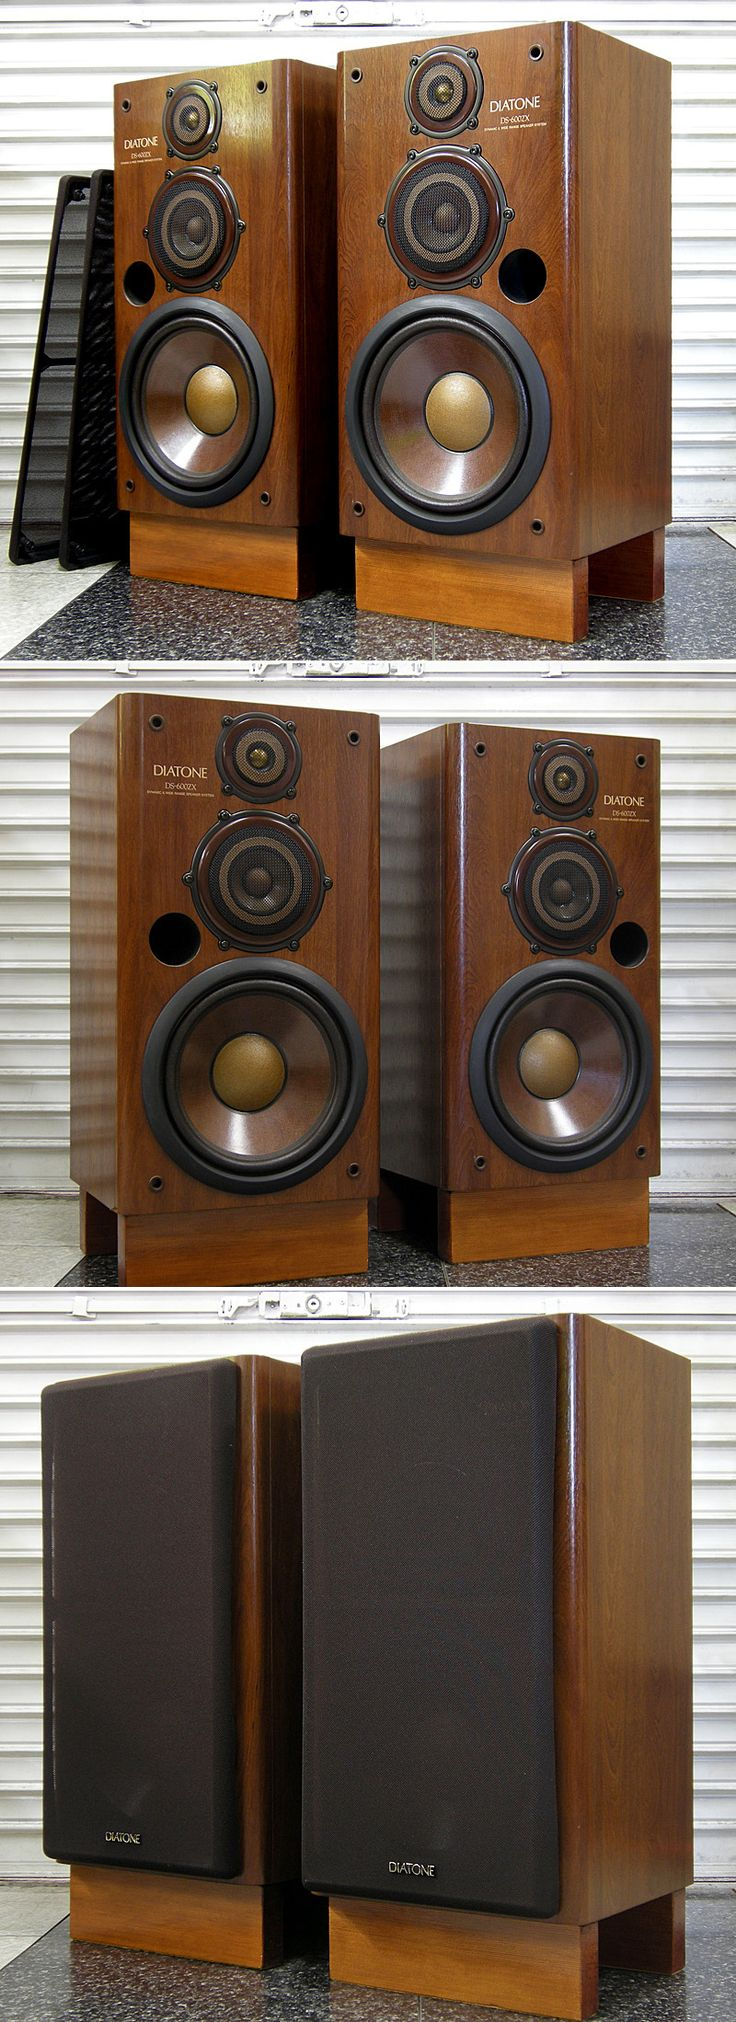 34 Best Caixas Acsticas Images On Pinterest Music Speakers 14w Stereo Audio Amplifier Electronicslab Injapanru Diatone Sp Ds 600zx